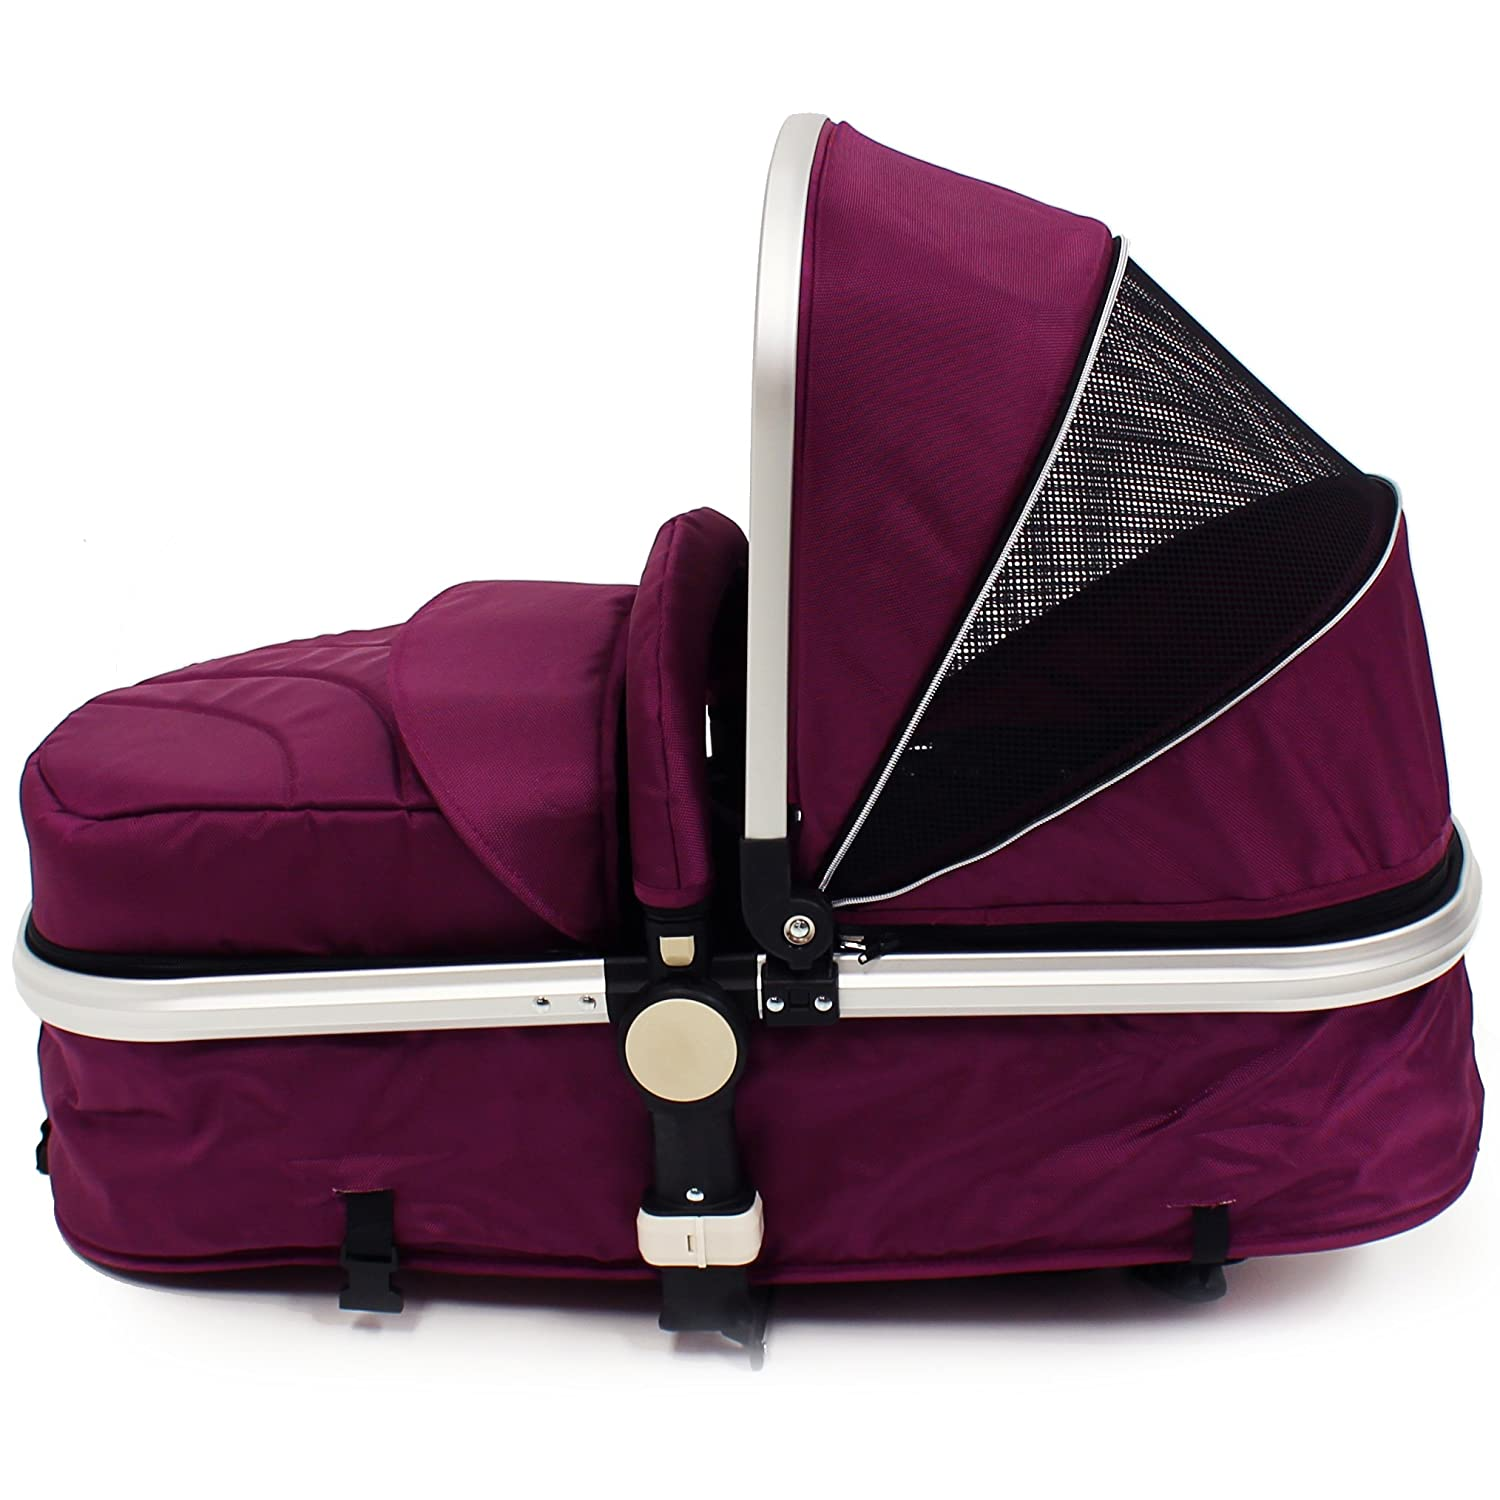 Rain Covers i-Safe System Plum Trio Travel System Pram /& Luxury Stroller 3 in 1 Complete With Car Seat